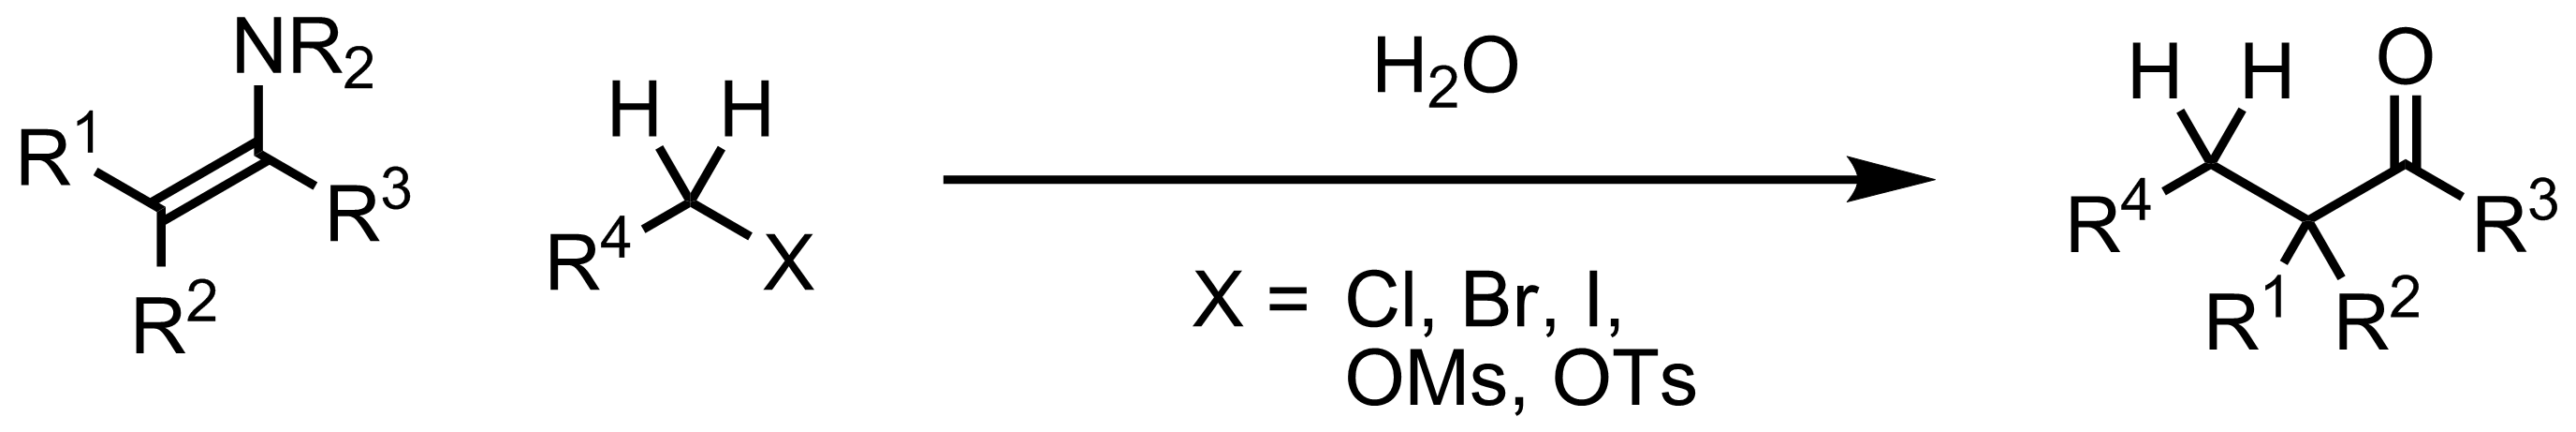 Schematic representation of the Stork Enamine Synthesis.